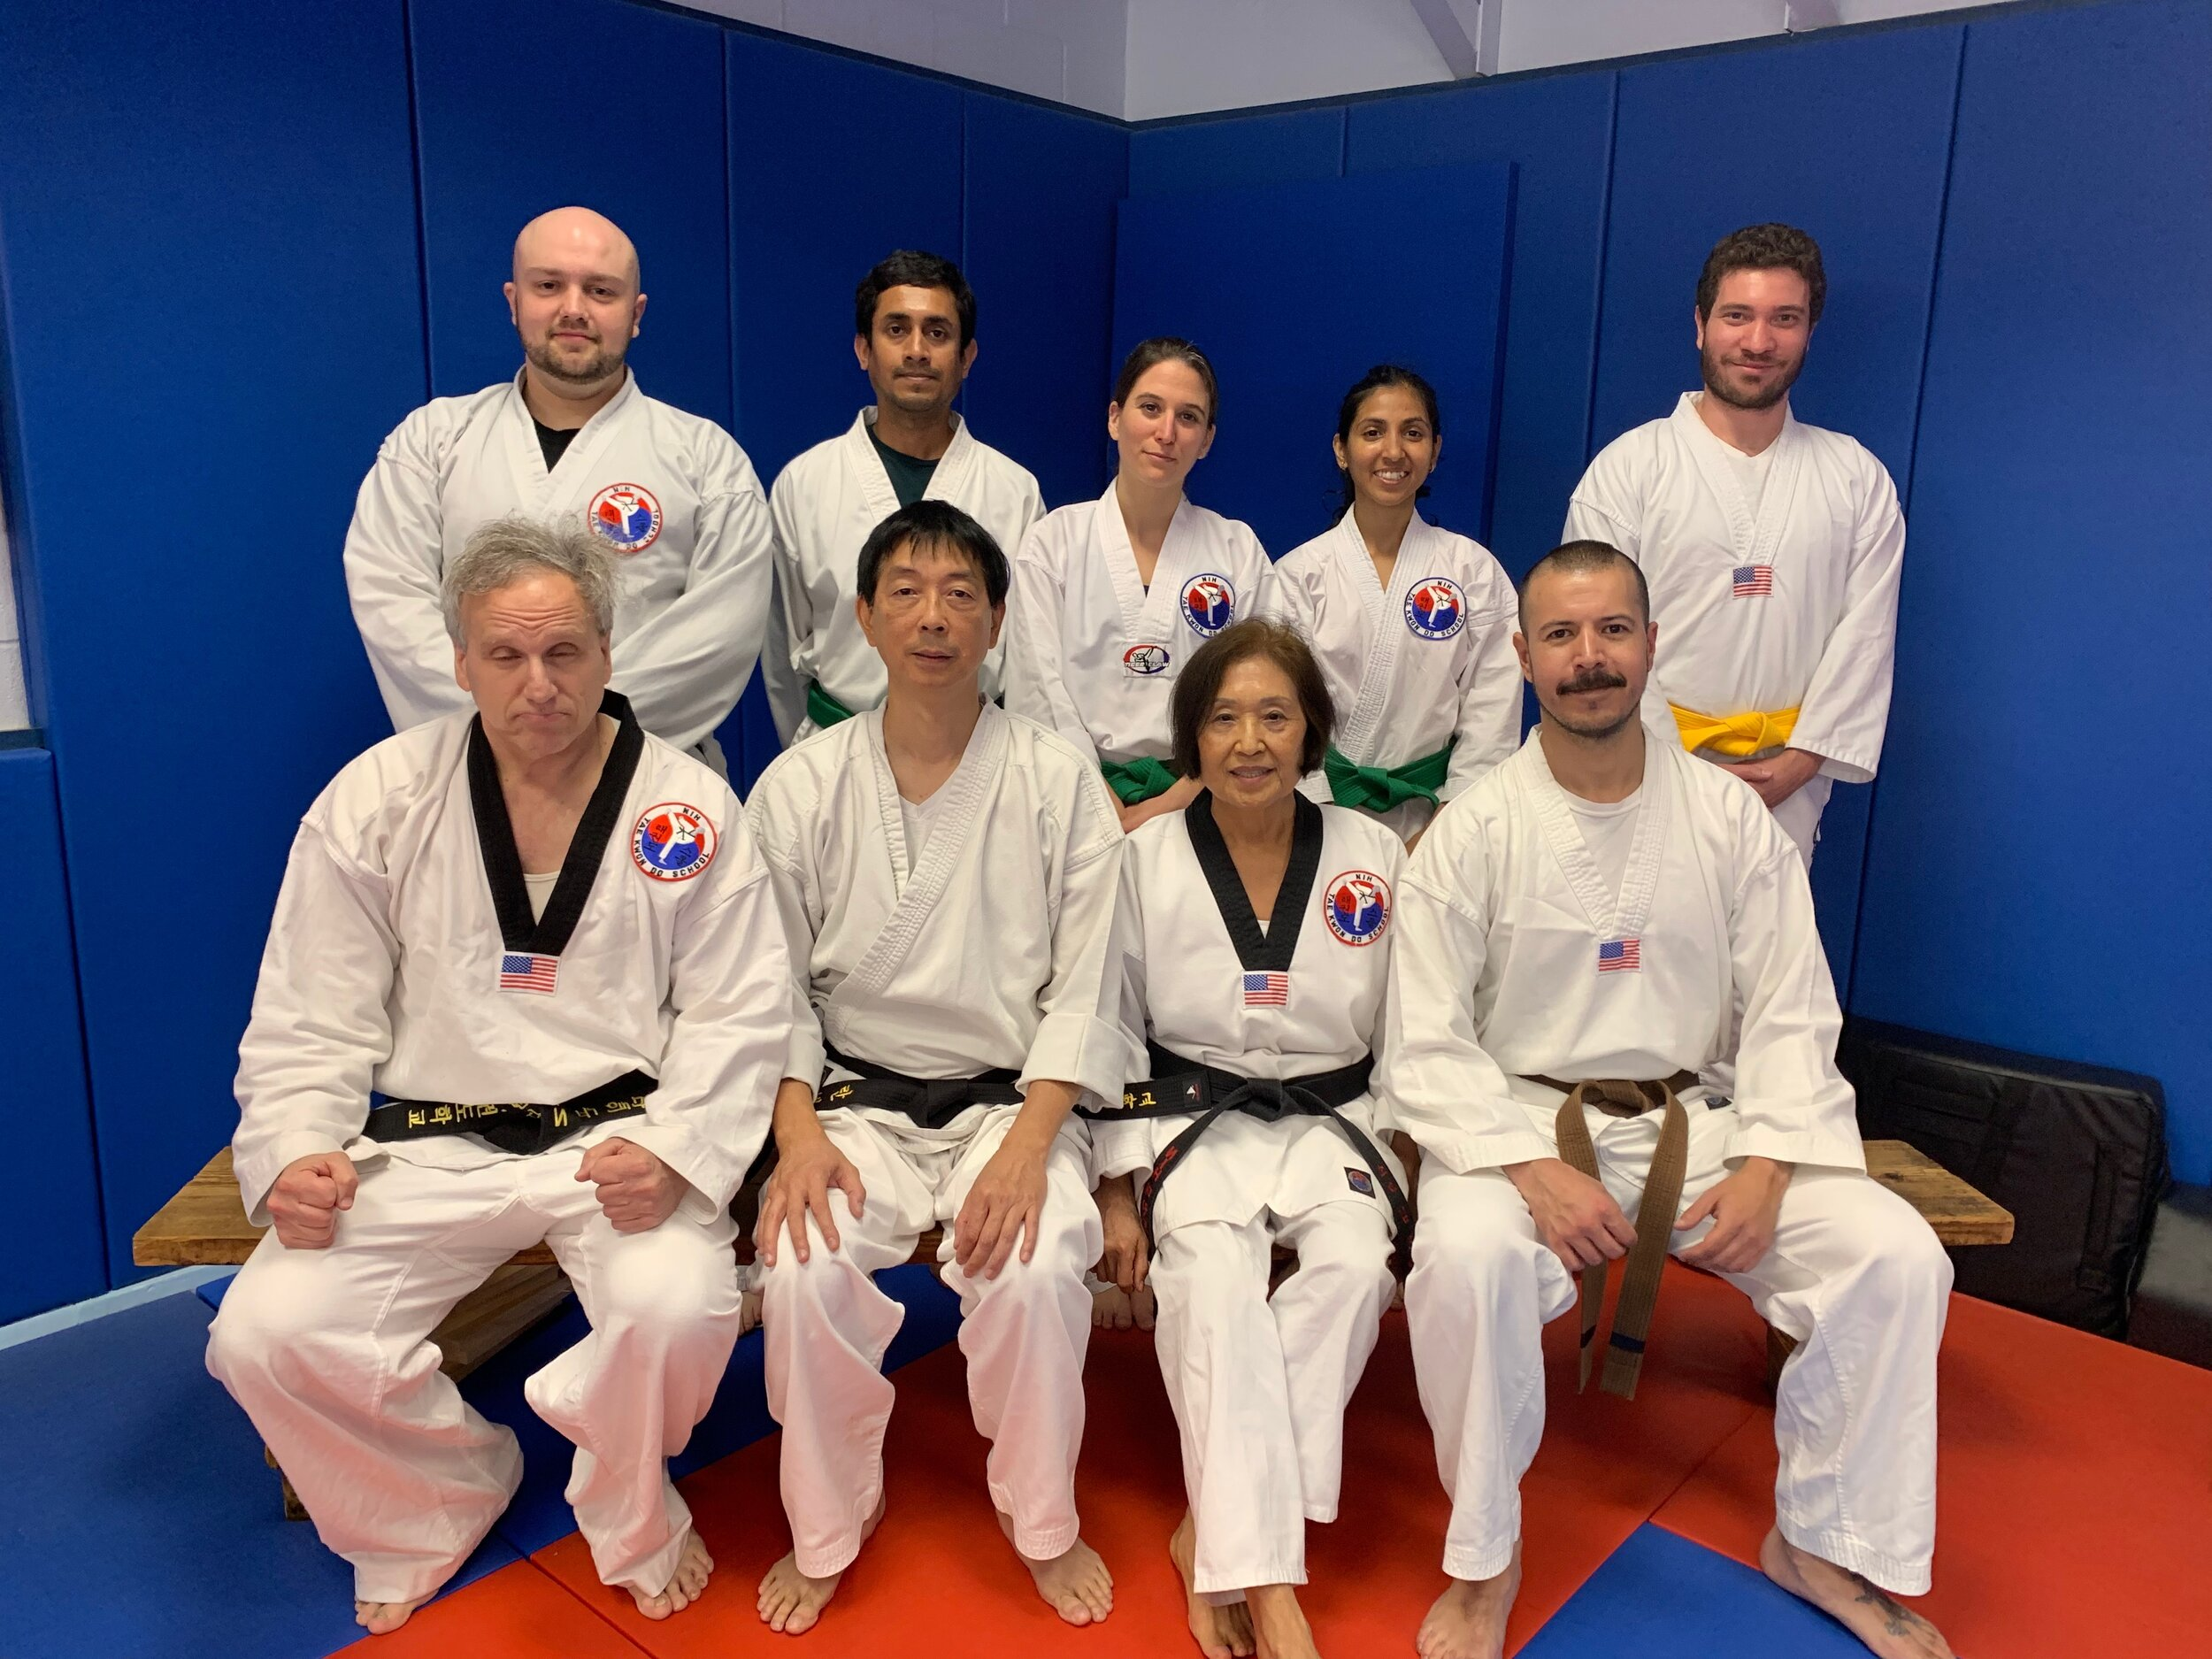 Congratulations to NIH TKD students Laurie Lannes, Ben Fadl, Ray Subhasis, and Dinuka De Sliva for successfully meeting the requirements for the  Blue Stripe  exam on Wednesday, September 11th, 2019.. Congratulations to NIH TKD student Daniel da Silva for successfully meeting the requirements for the Gold belt exam.